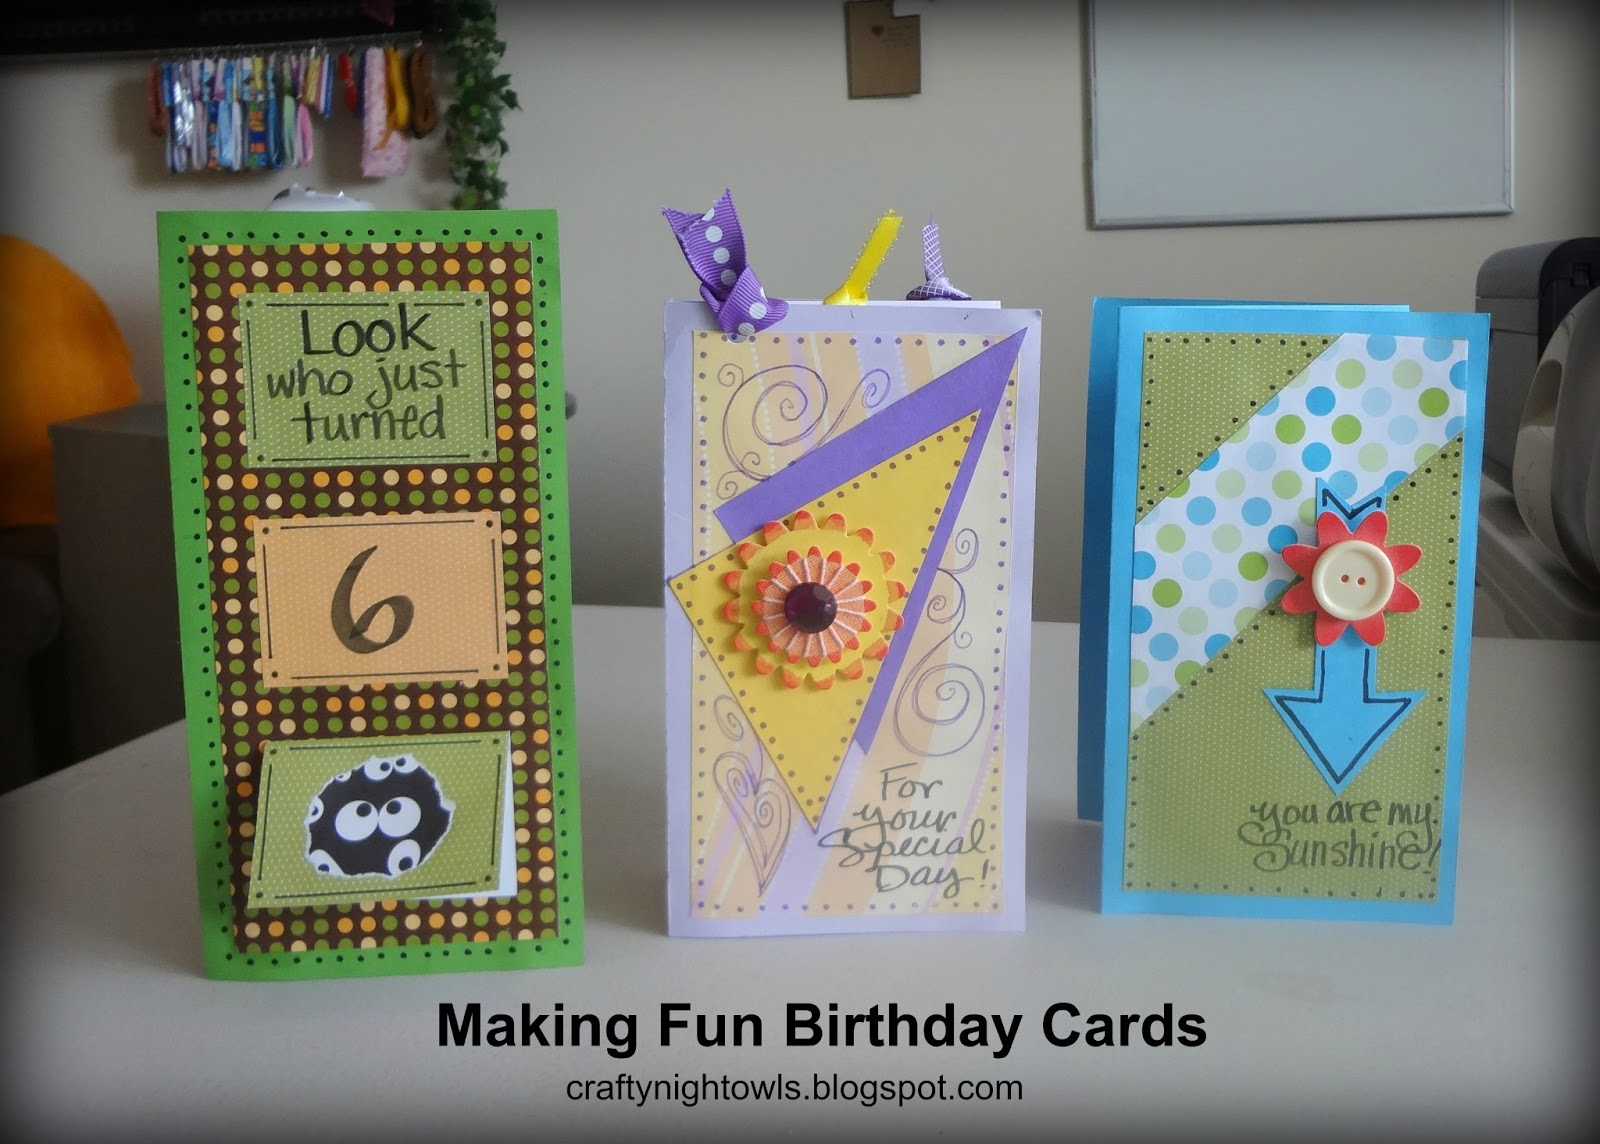 I Recently Made Birthday Cards For Three Of My Grandchildren They Are Always Thrilled When Make One Personalizing It With Their Name On